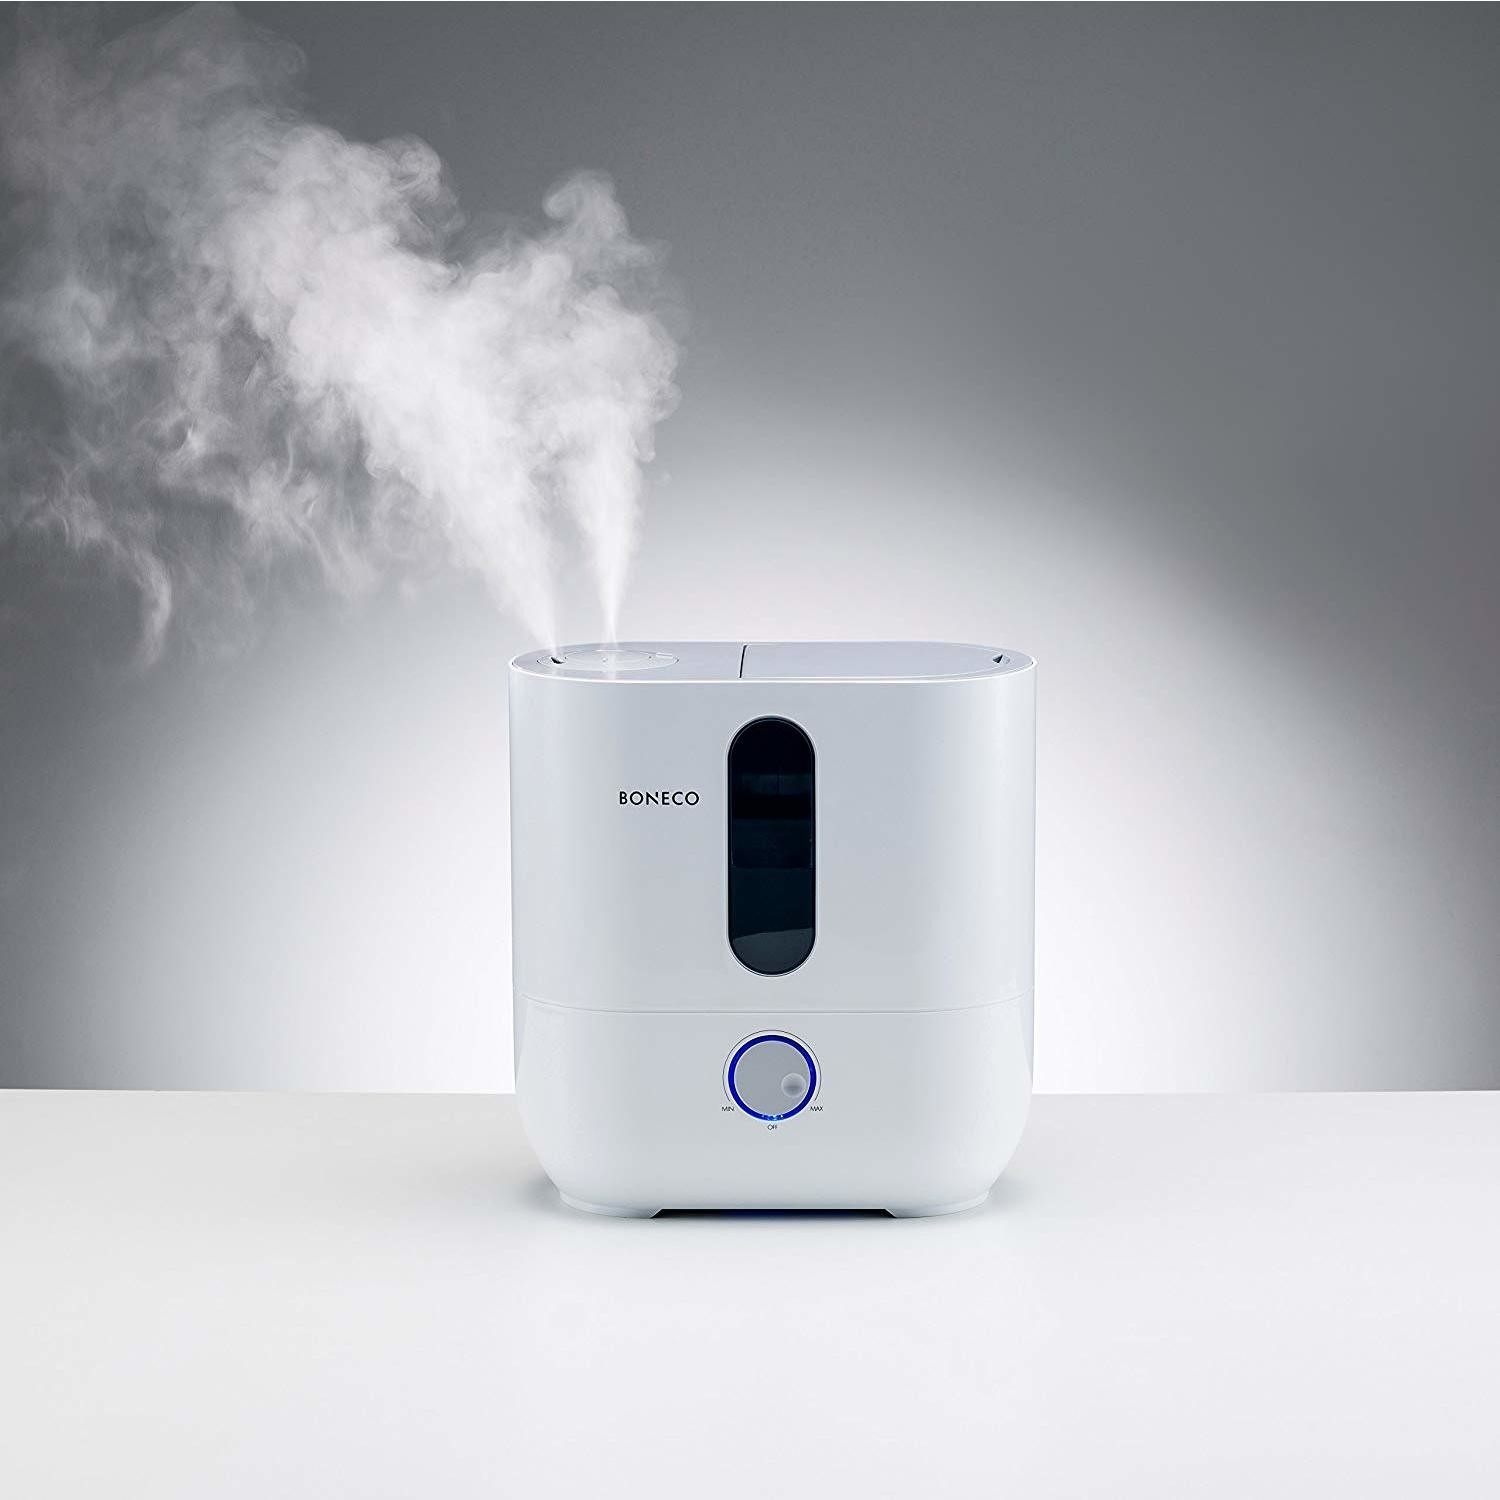 Boneco U300 5L Hard Water Cool Mist Humidifier with Aroma Diffuser and Refilling Reminder